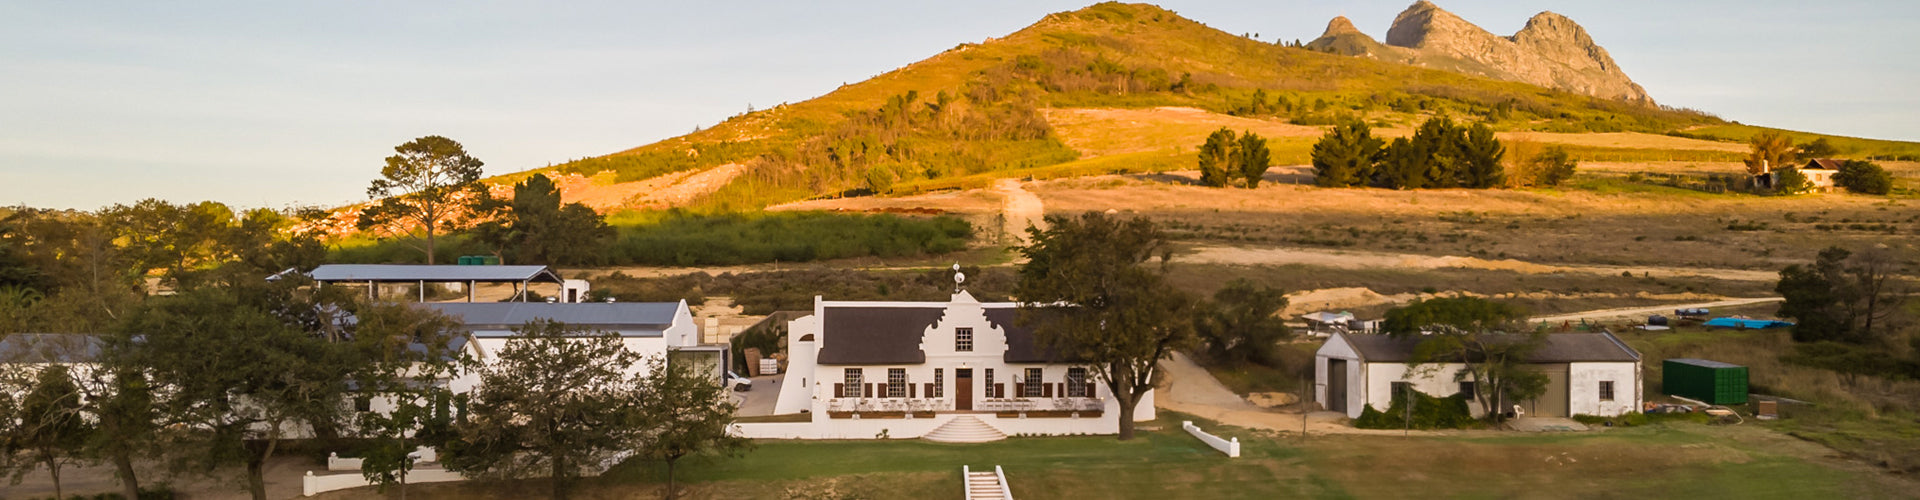 Lievland Wine Estate in Stellenbosch, South Africa